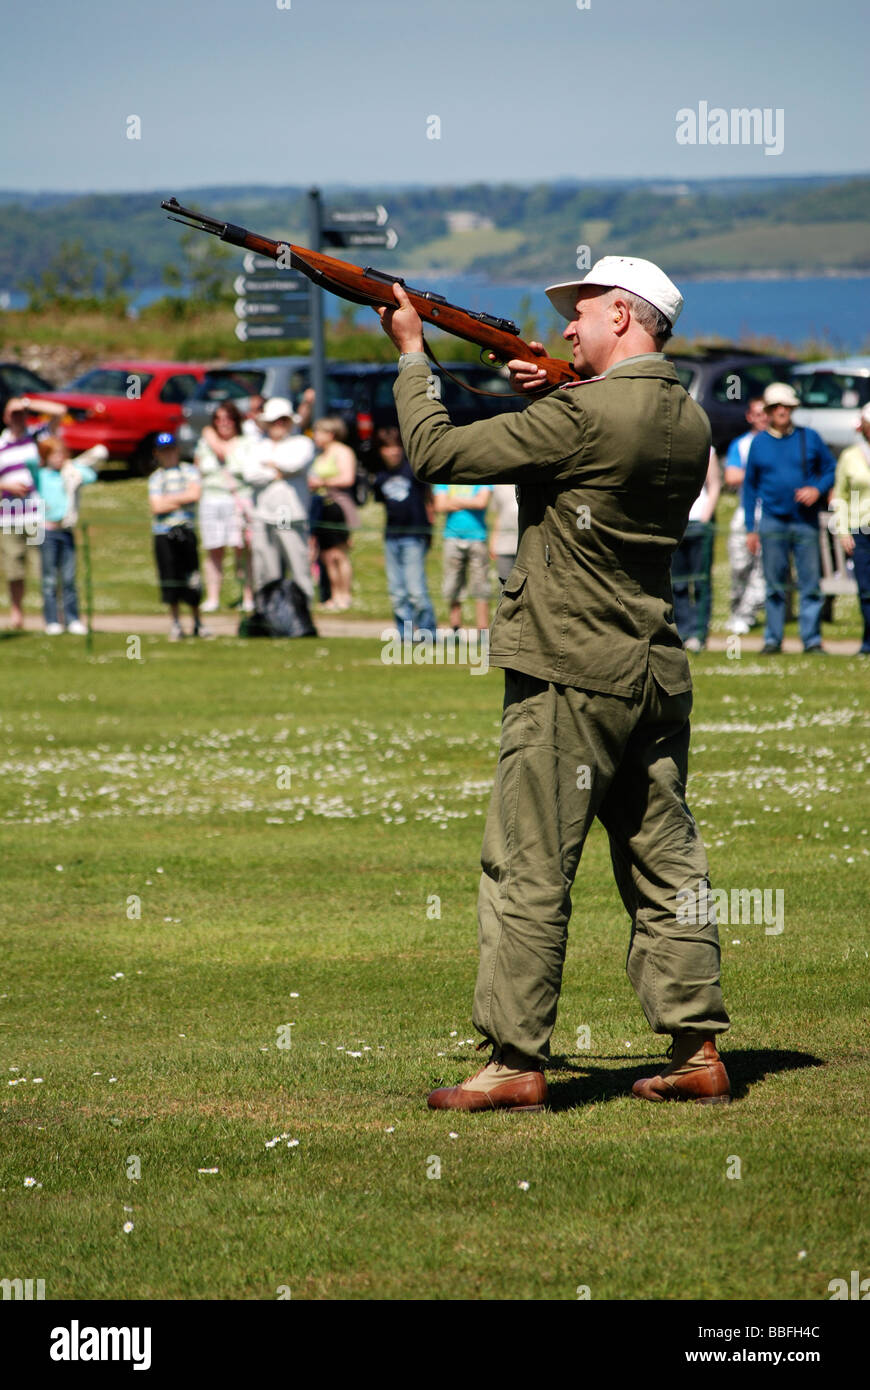 a second world war german soldier shooting a rifle at d.day remembrance day at falmouth,cornwall,uk - Stock Image